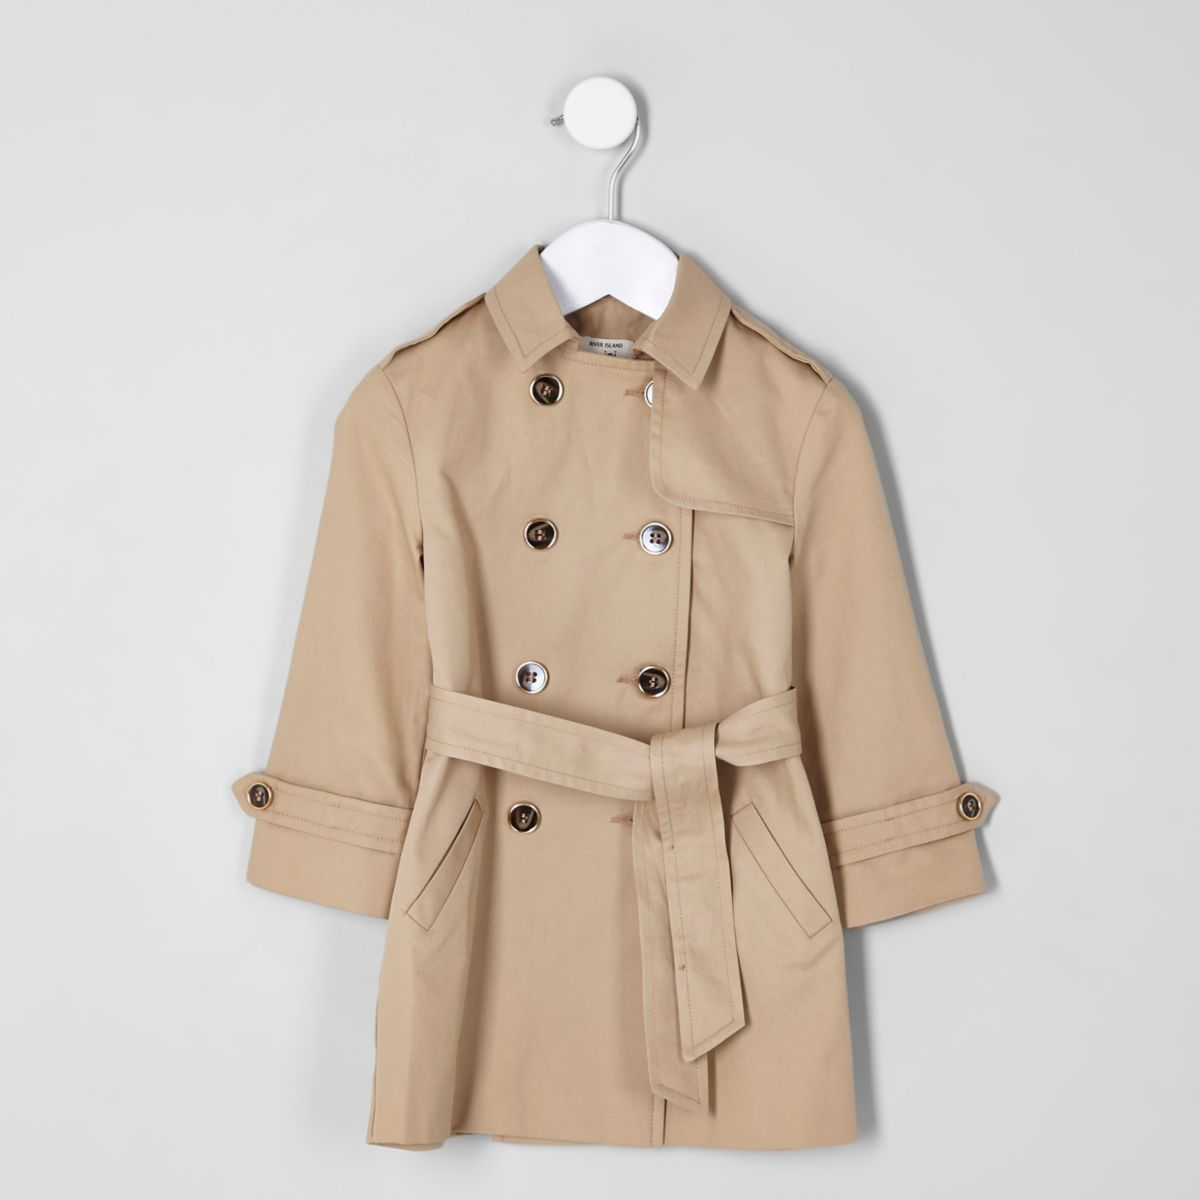 Shop for trench coat online at Target. Free shipping on purchases over $35 and save 5% every day with your Target REDcard.